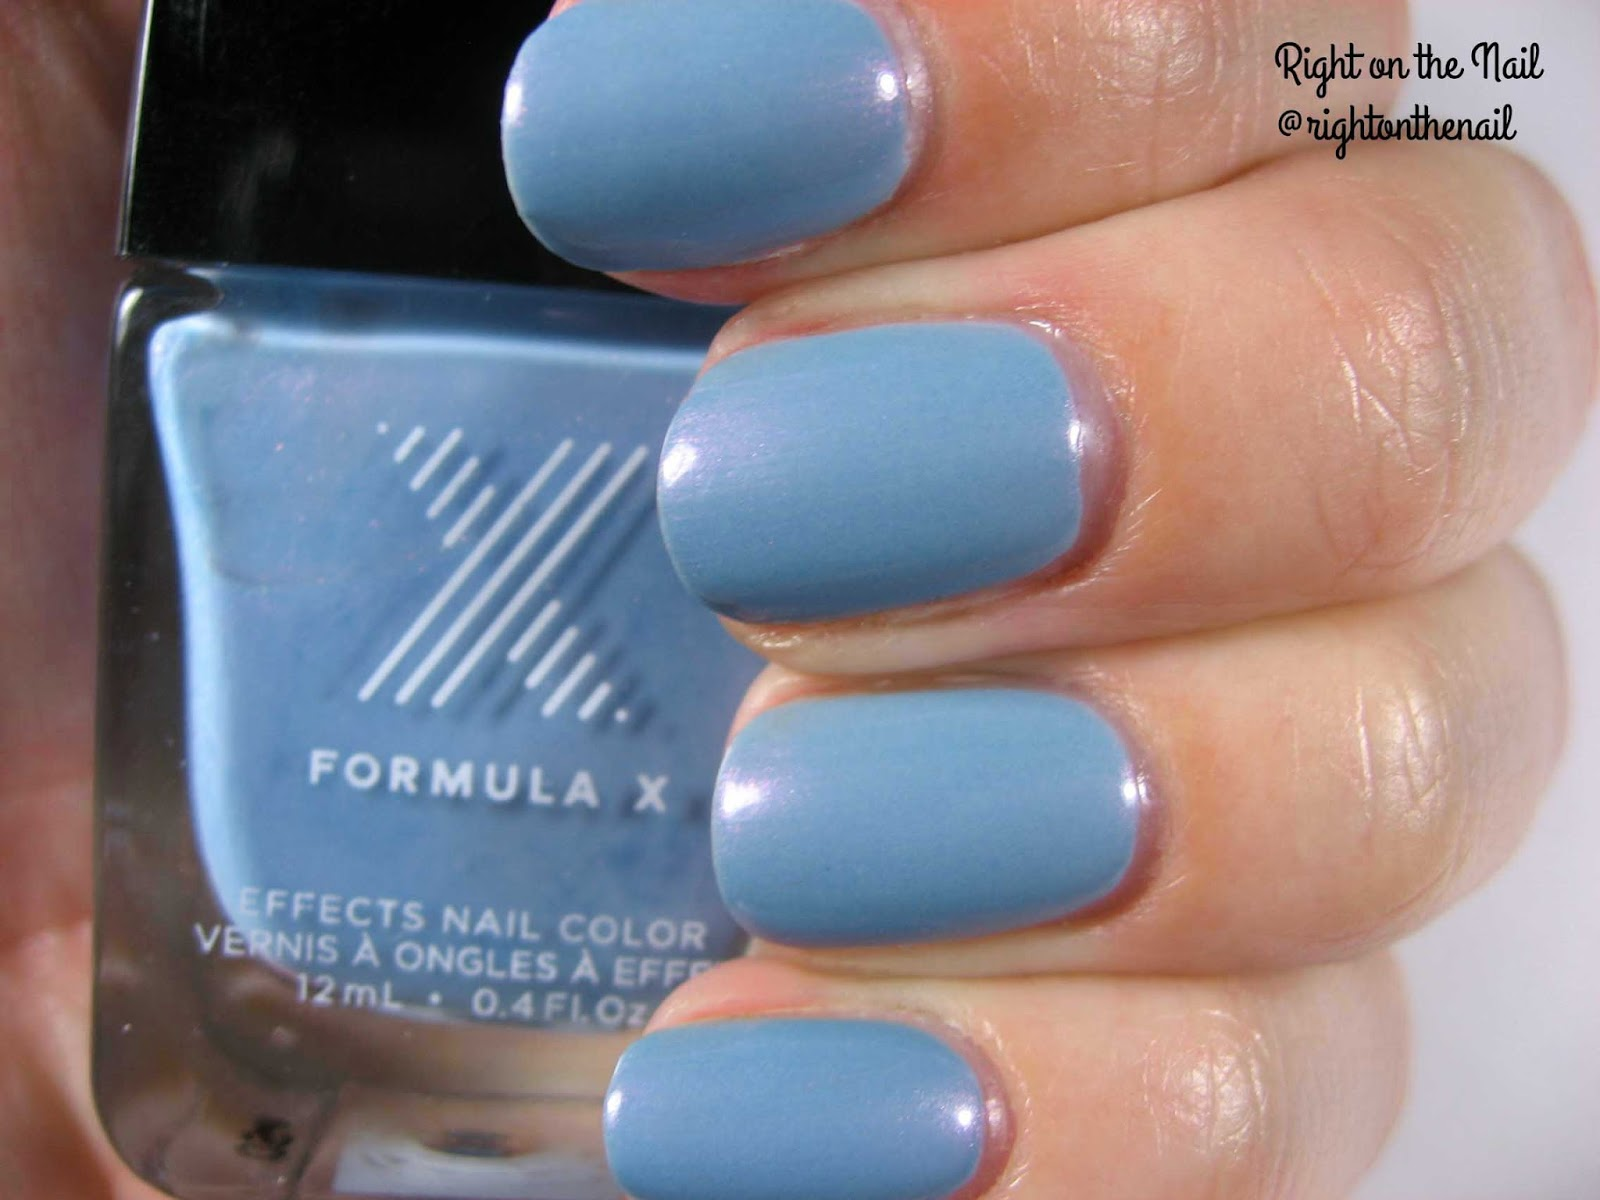 Right on the Nail: Right on the Nail ~ Sephora Formula X The Brushed ...